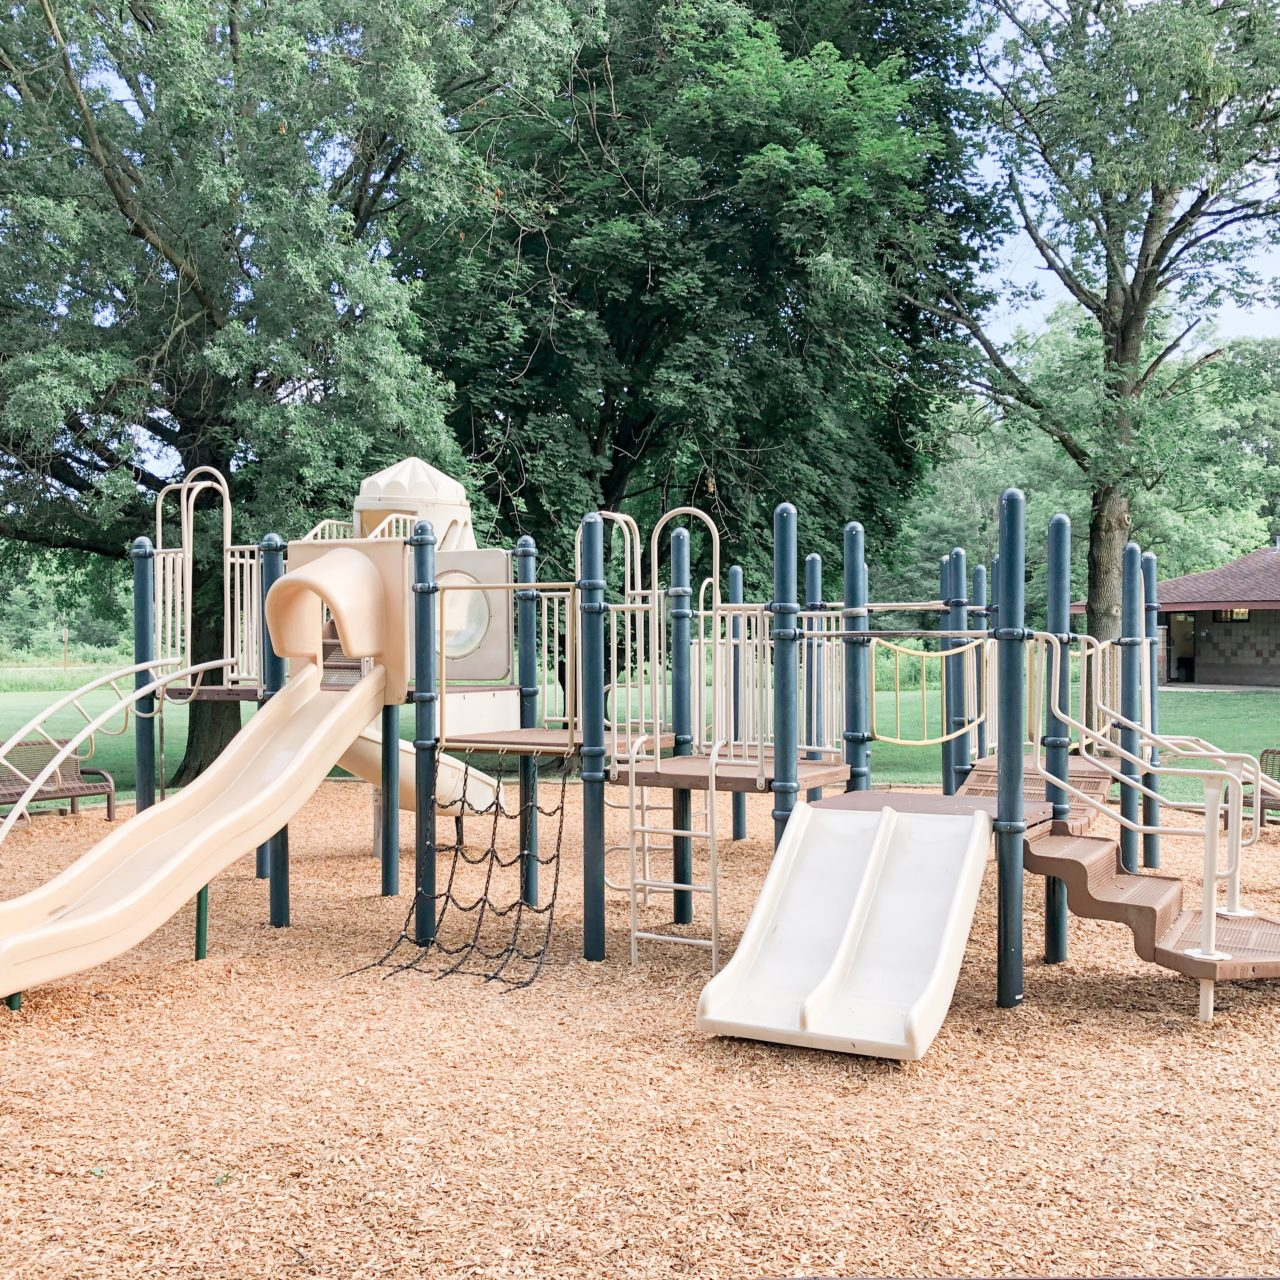 Oak Coves Picnic Area Playground at Highbanks Metro Park